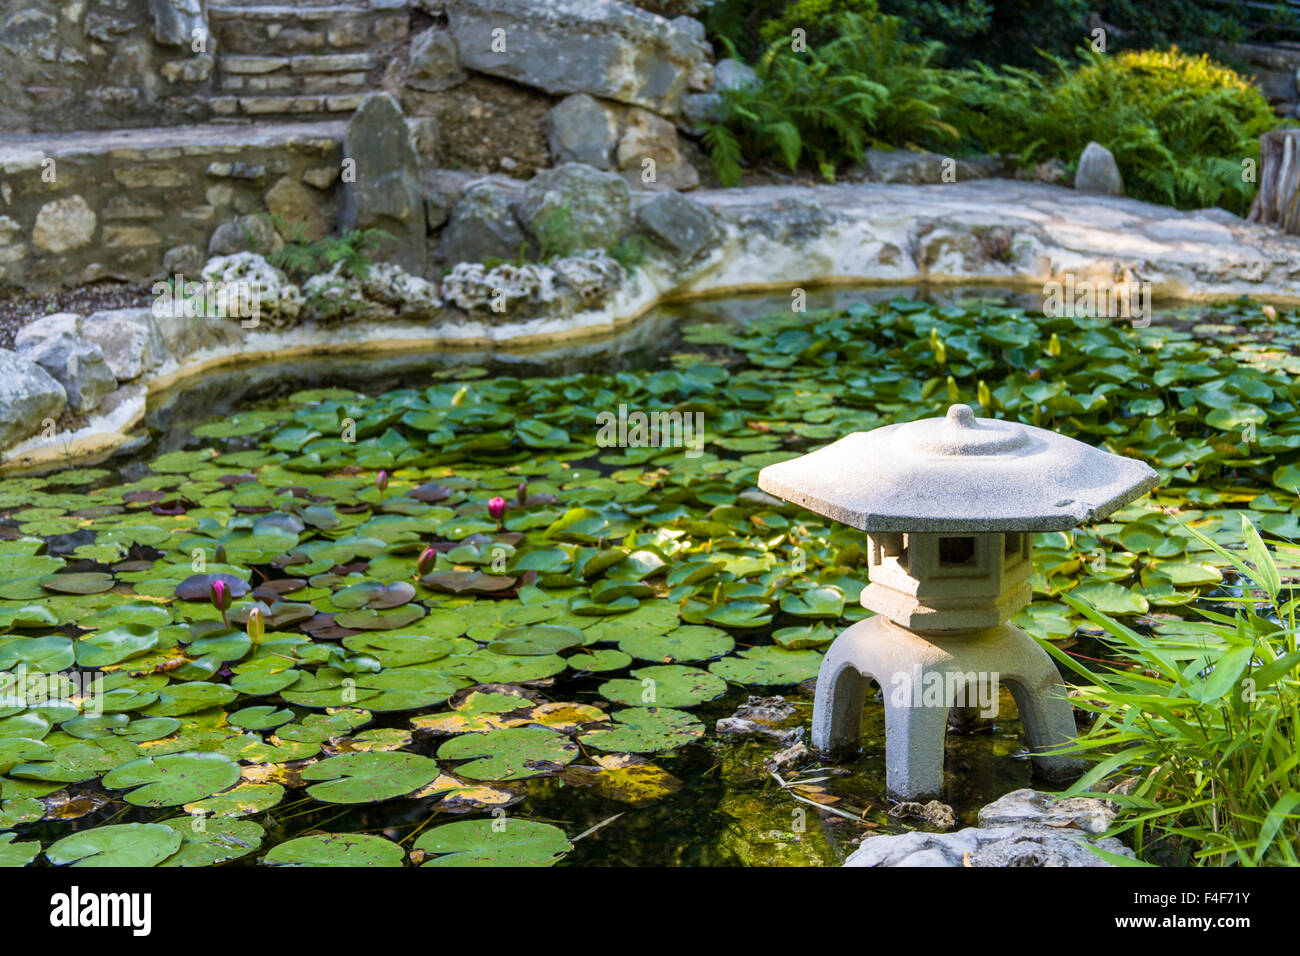 USA, Austin, Texas, Zilker Botanical Garden, Japanese Garden, And Water  Lily Pond, Zilker Park